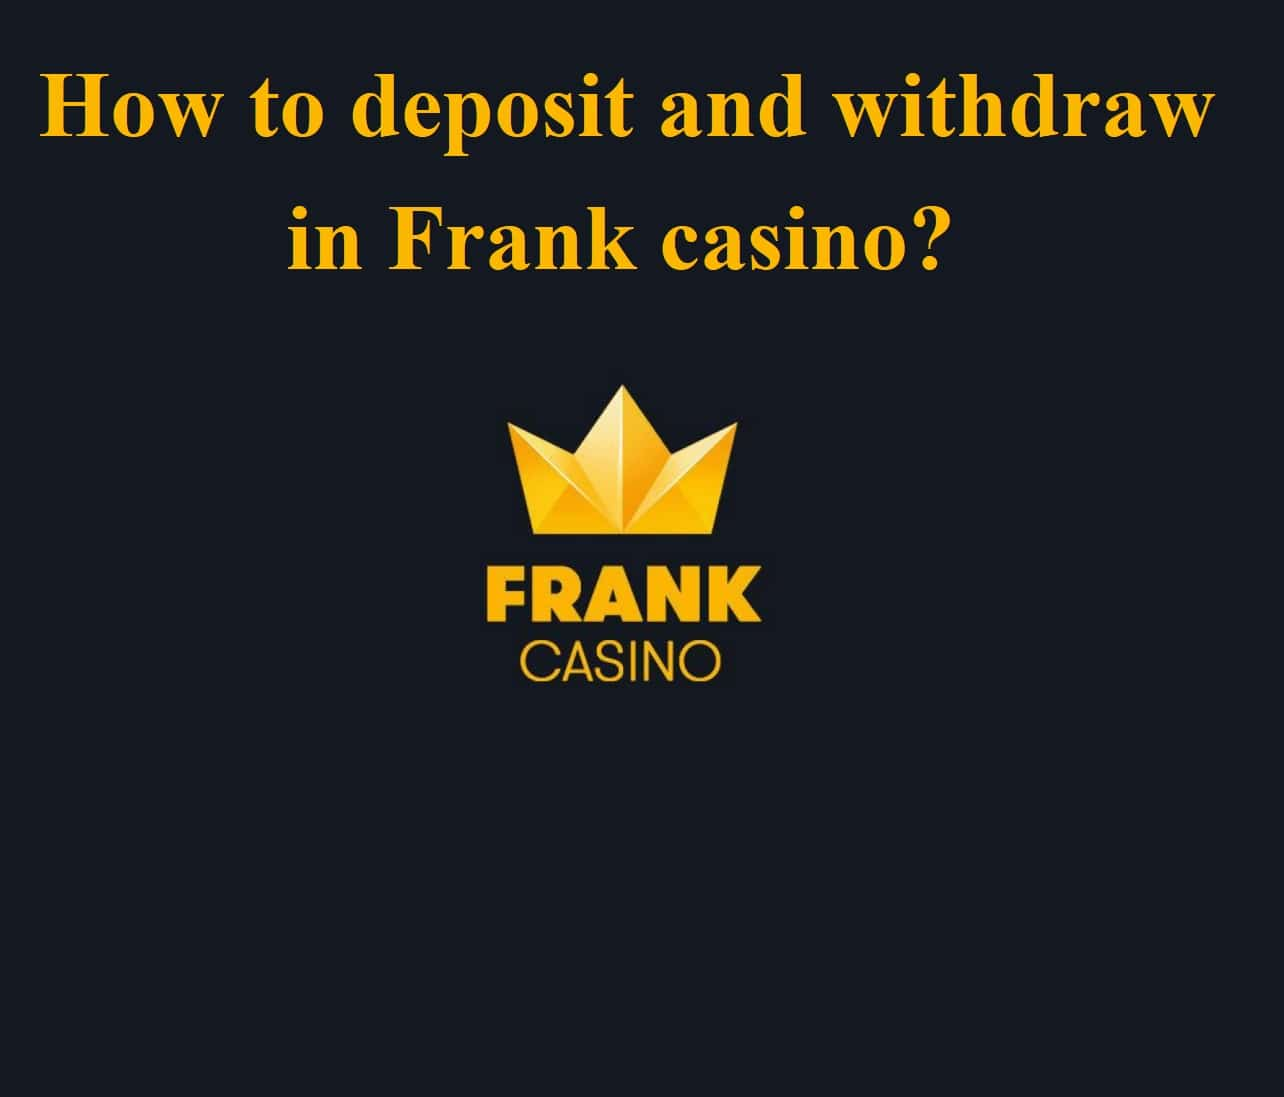 How to deposit and withdraw in Frank casino